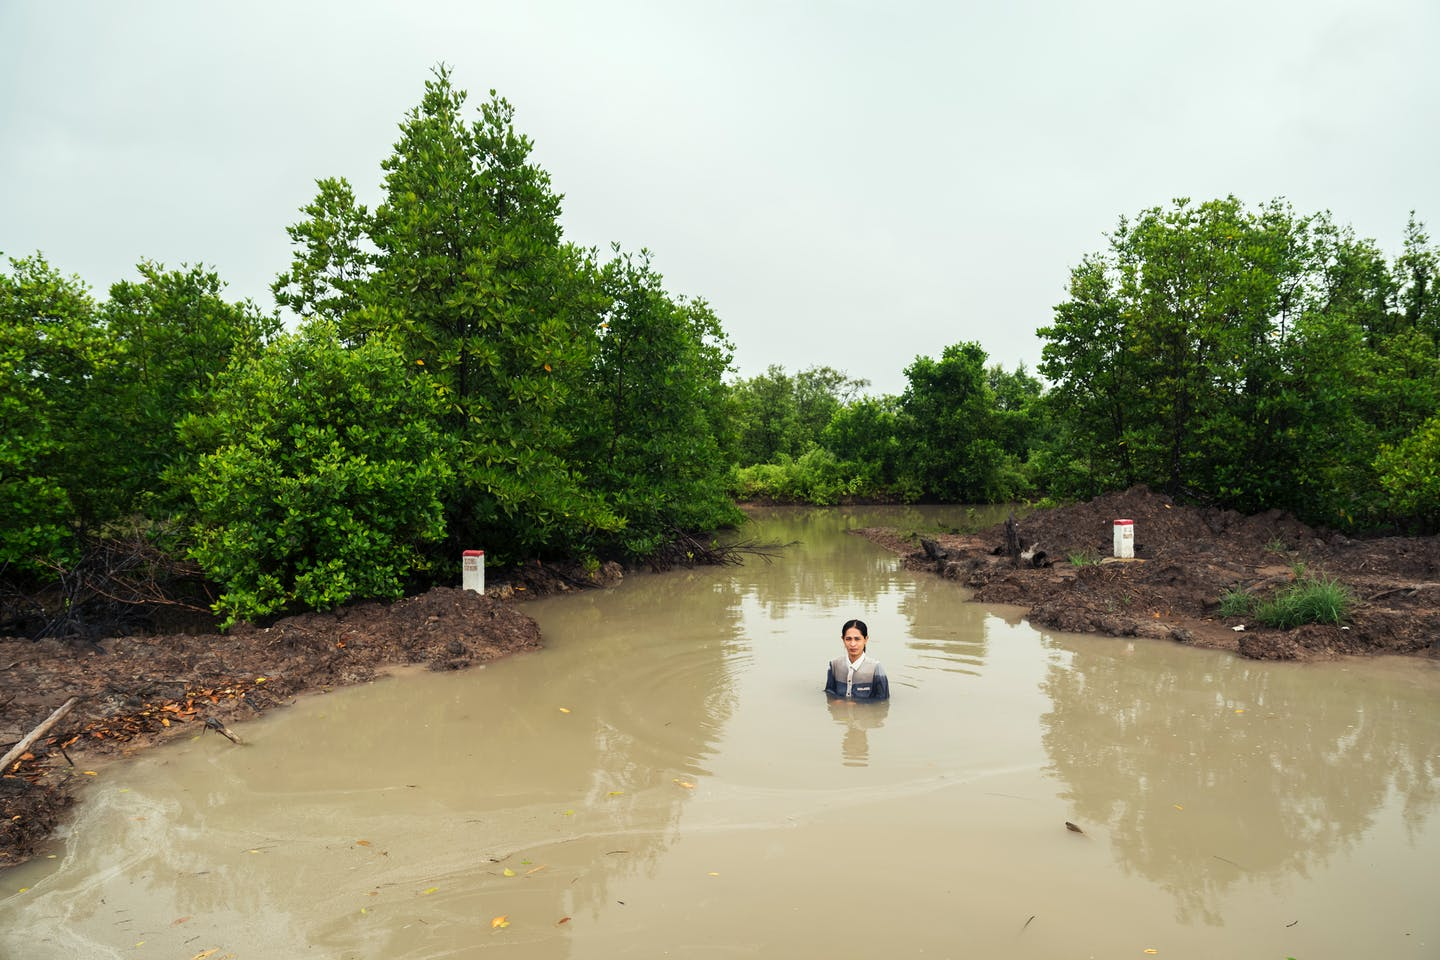 A Shrimp Catcher in a Mangrove Swamp Oh Soon-Hwa